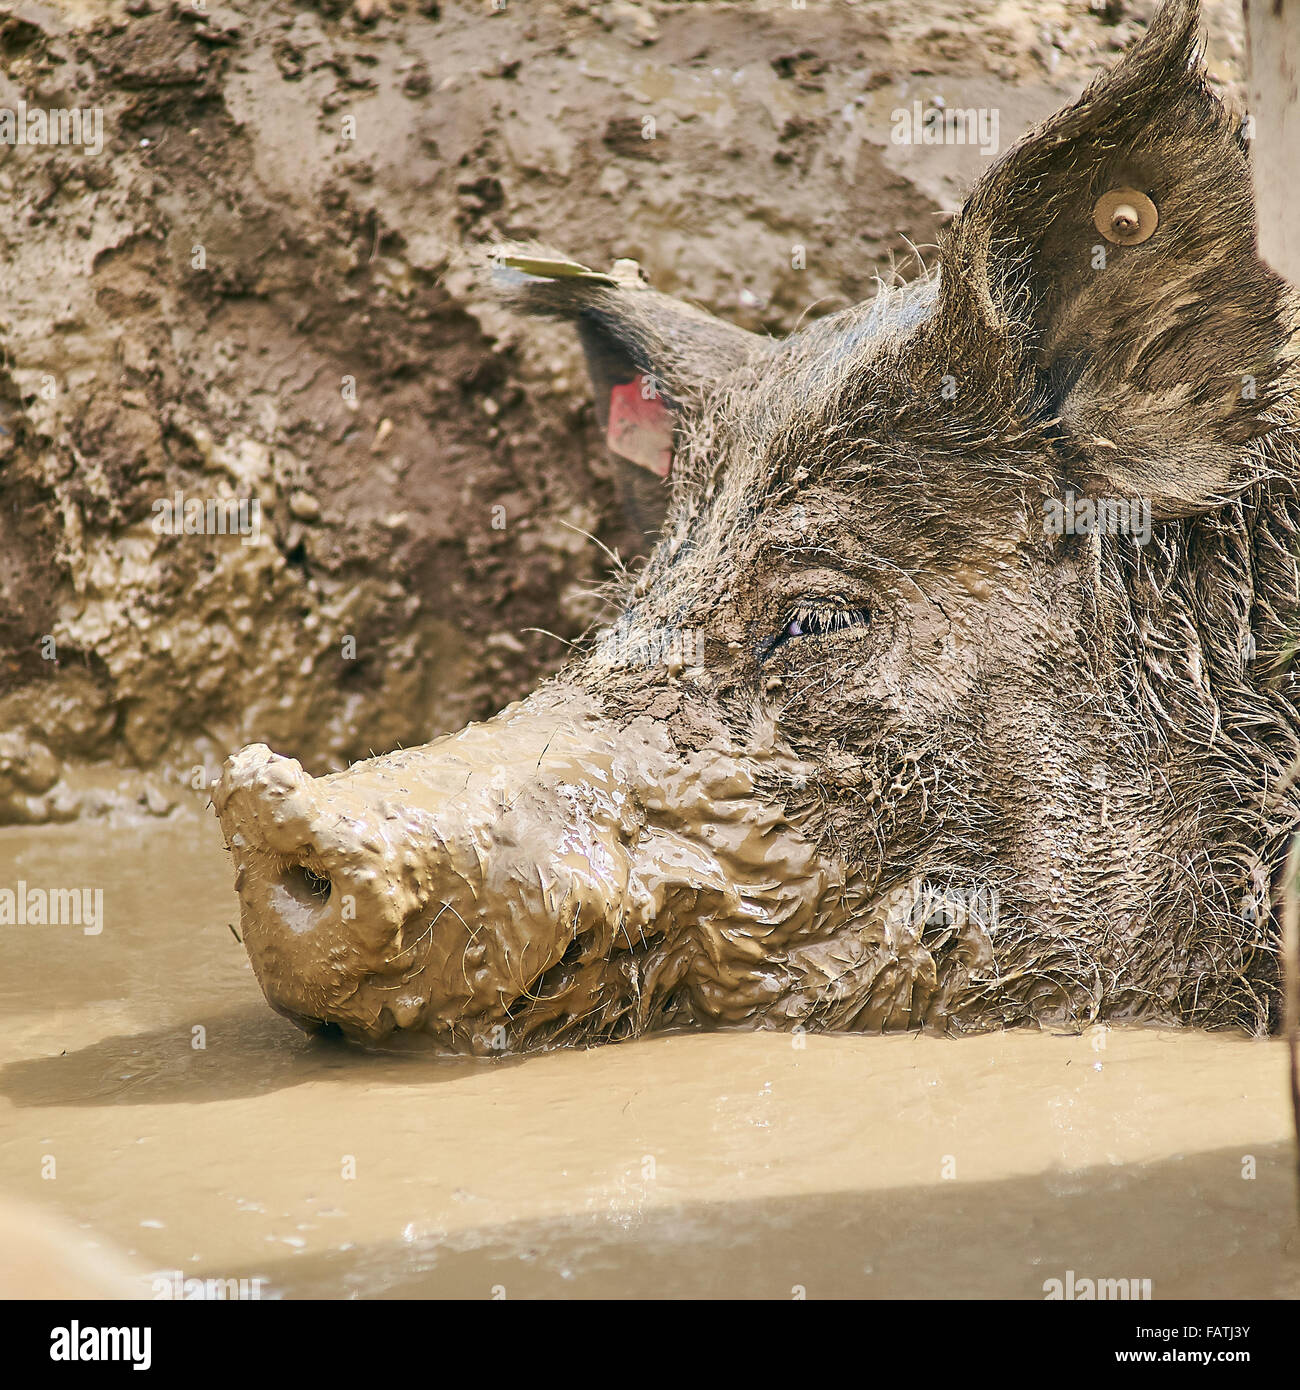 Head shot of a Free Range Pig wallowing in mud - Stock Image